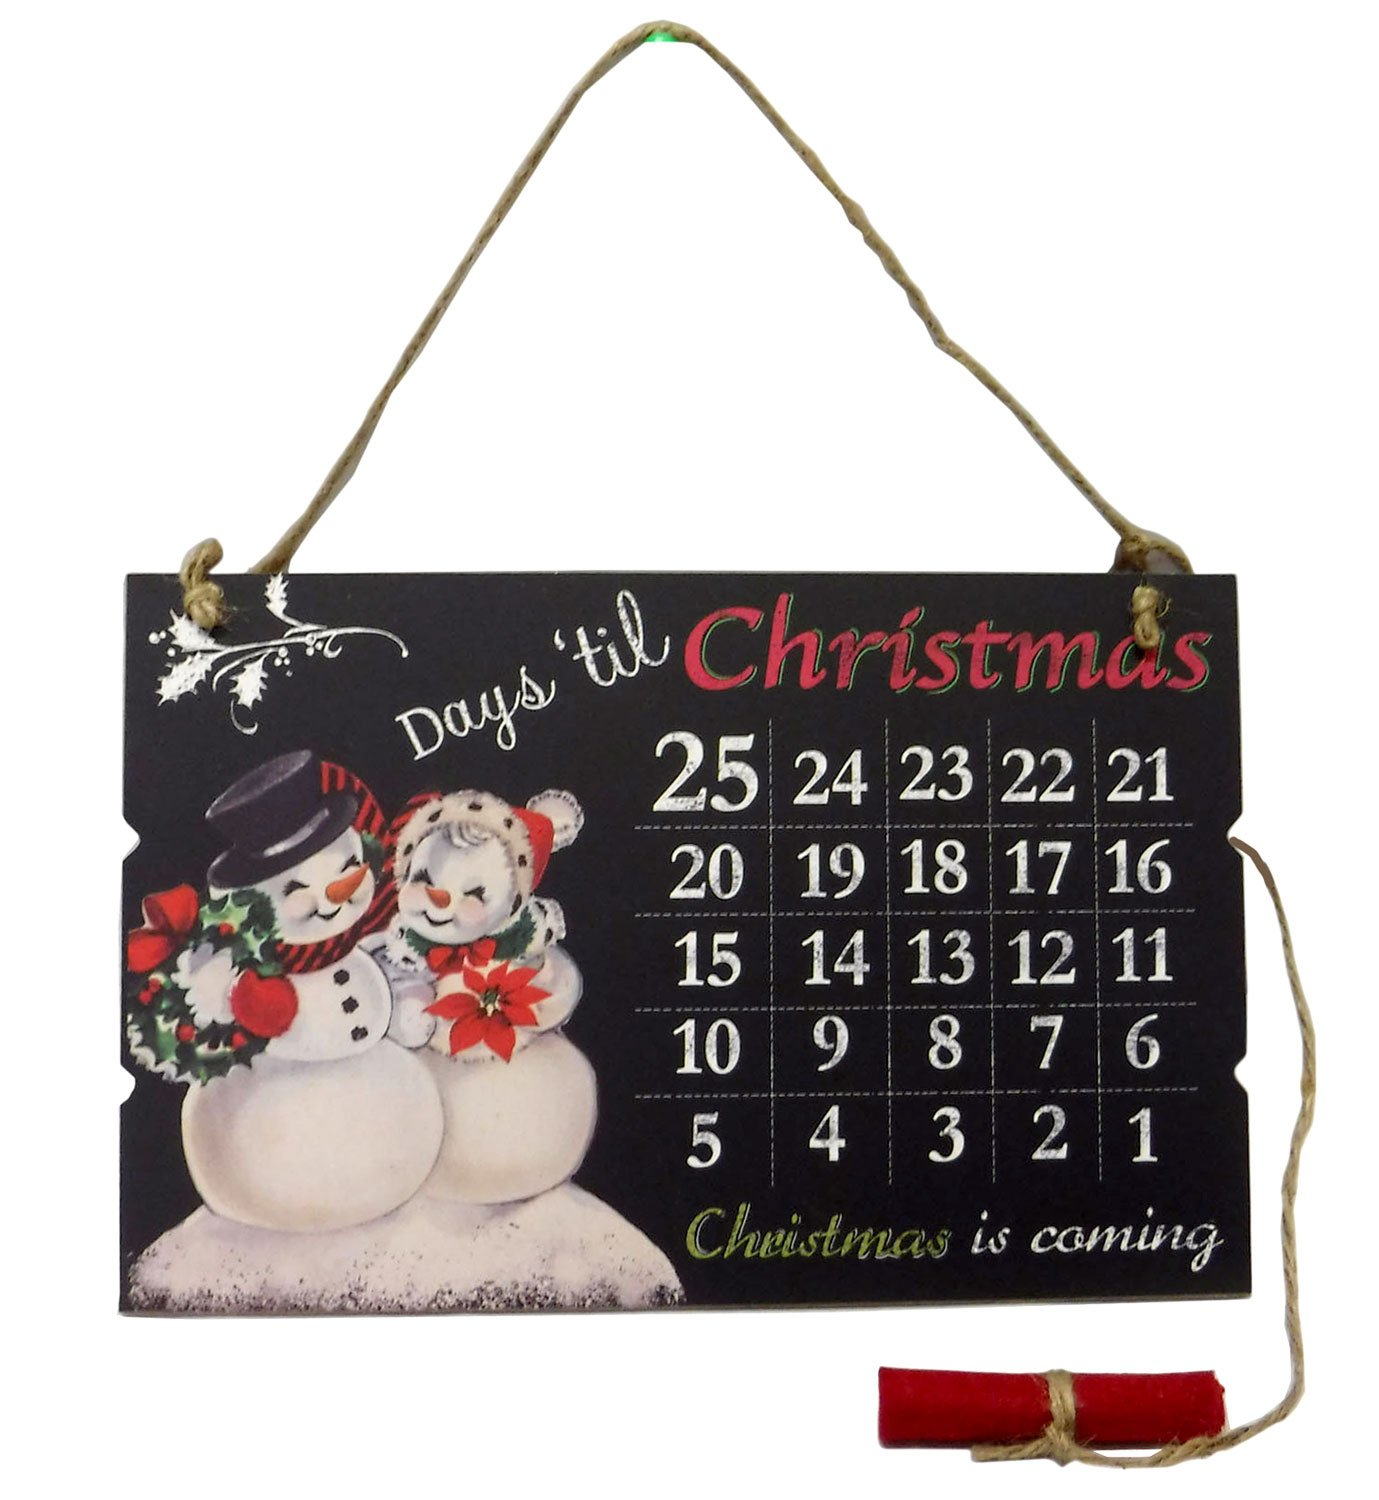 Days Till Christmas Advent Calendar Wood Hanging with Chalk Snowmen